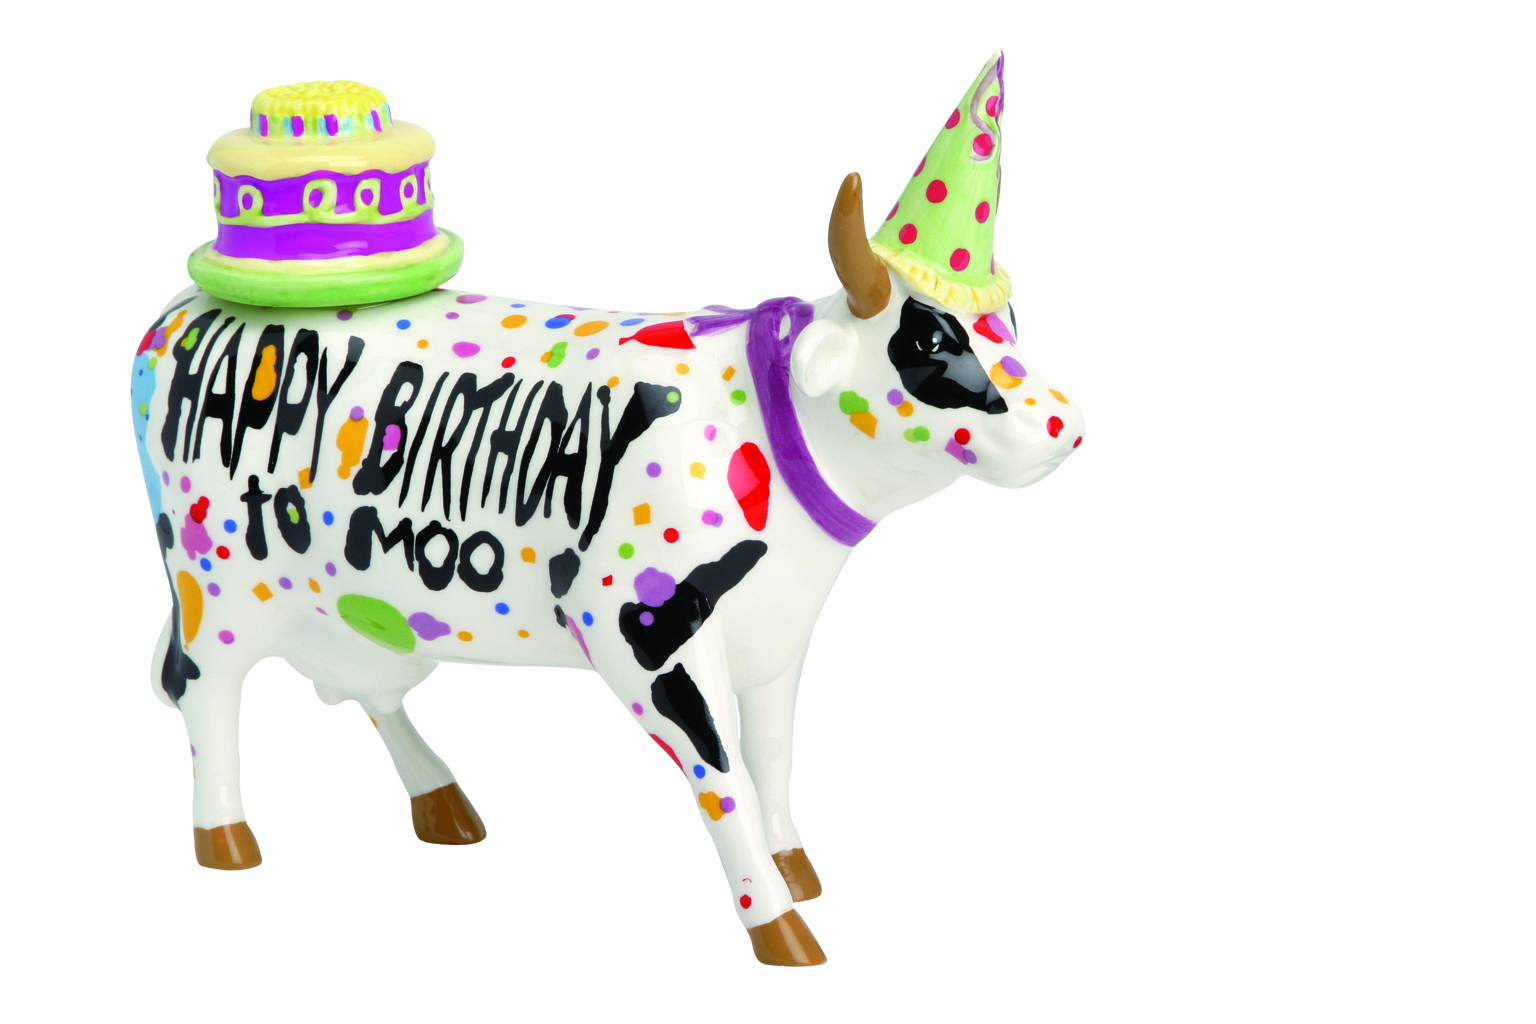 Cow Parade Happy Birthday To Moo